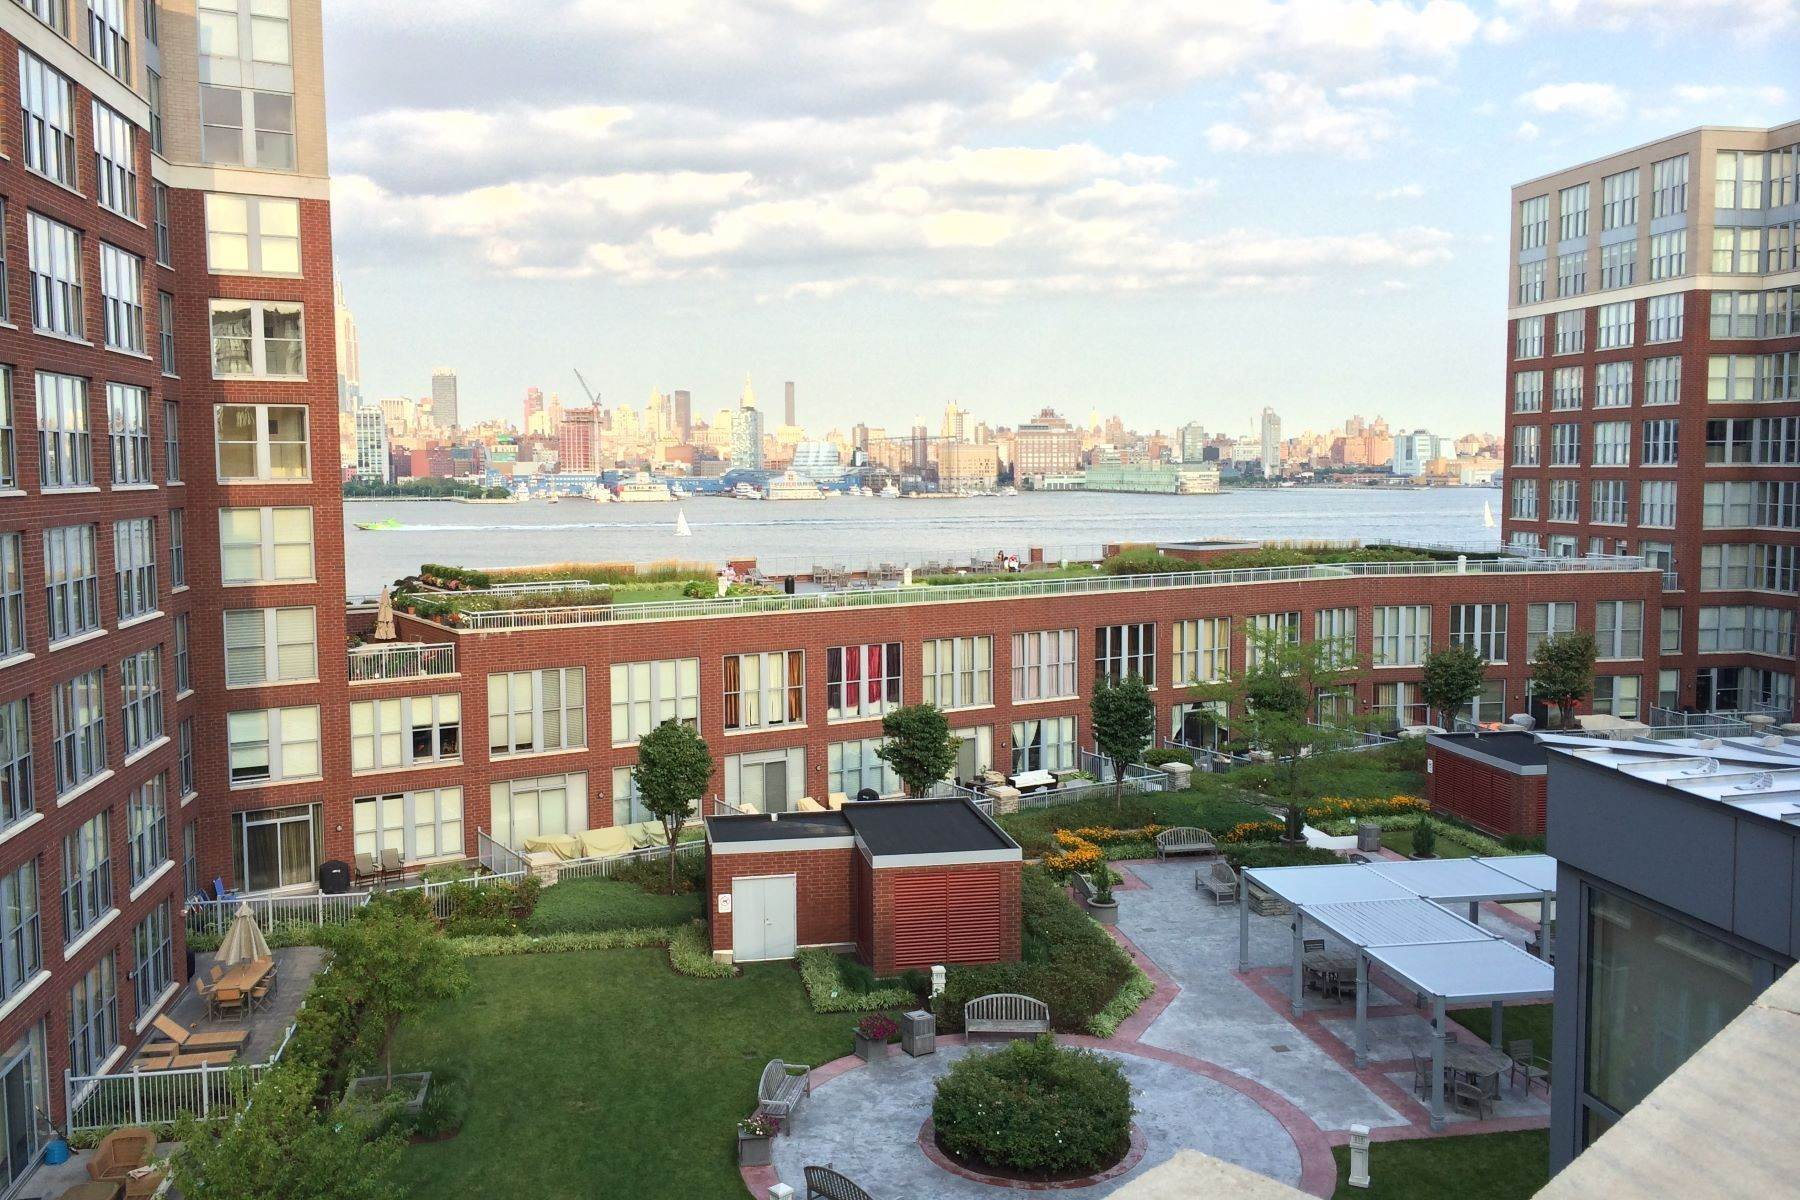 Condominiums at Hoboken's resort style waterfront community 1025 Maxwell Lane #508 Hoboken, New Jersey 07030 United States